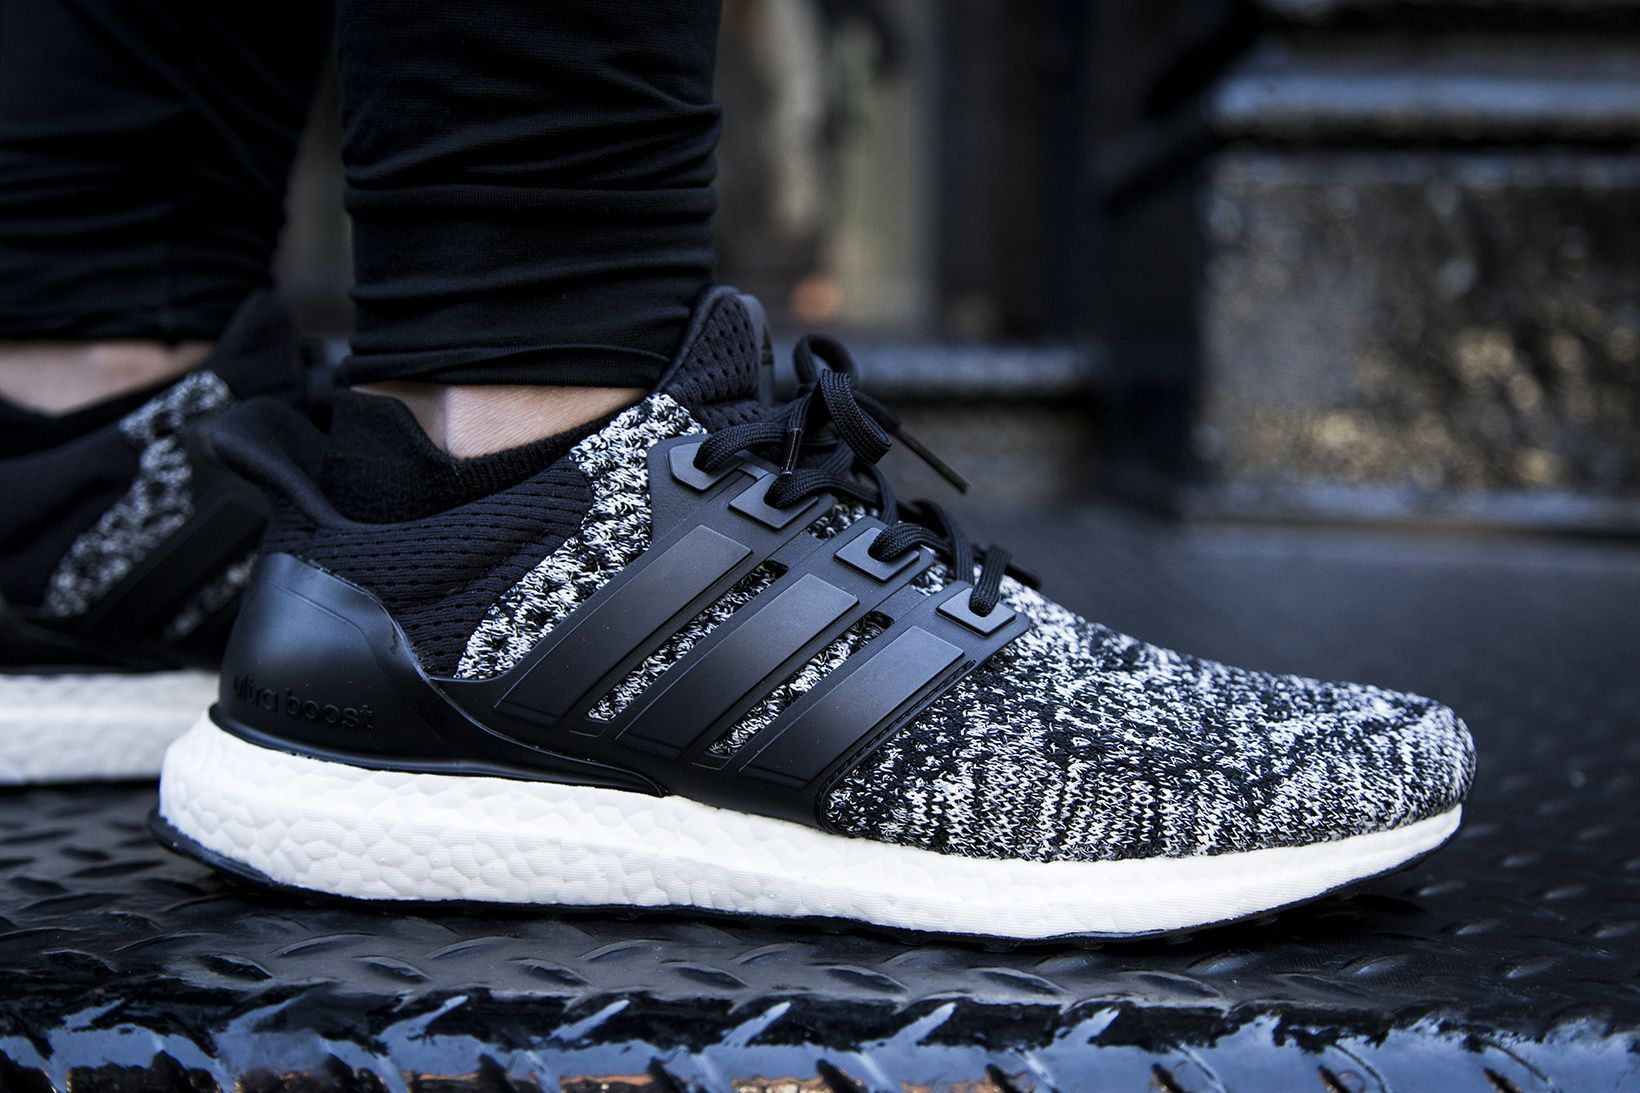 A Closer Look at the Reigning Champ x adidas Collaboration UltraBOOST